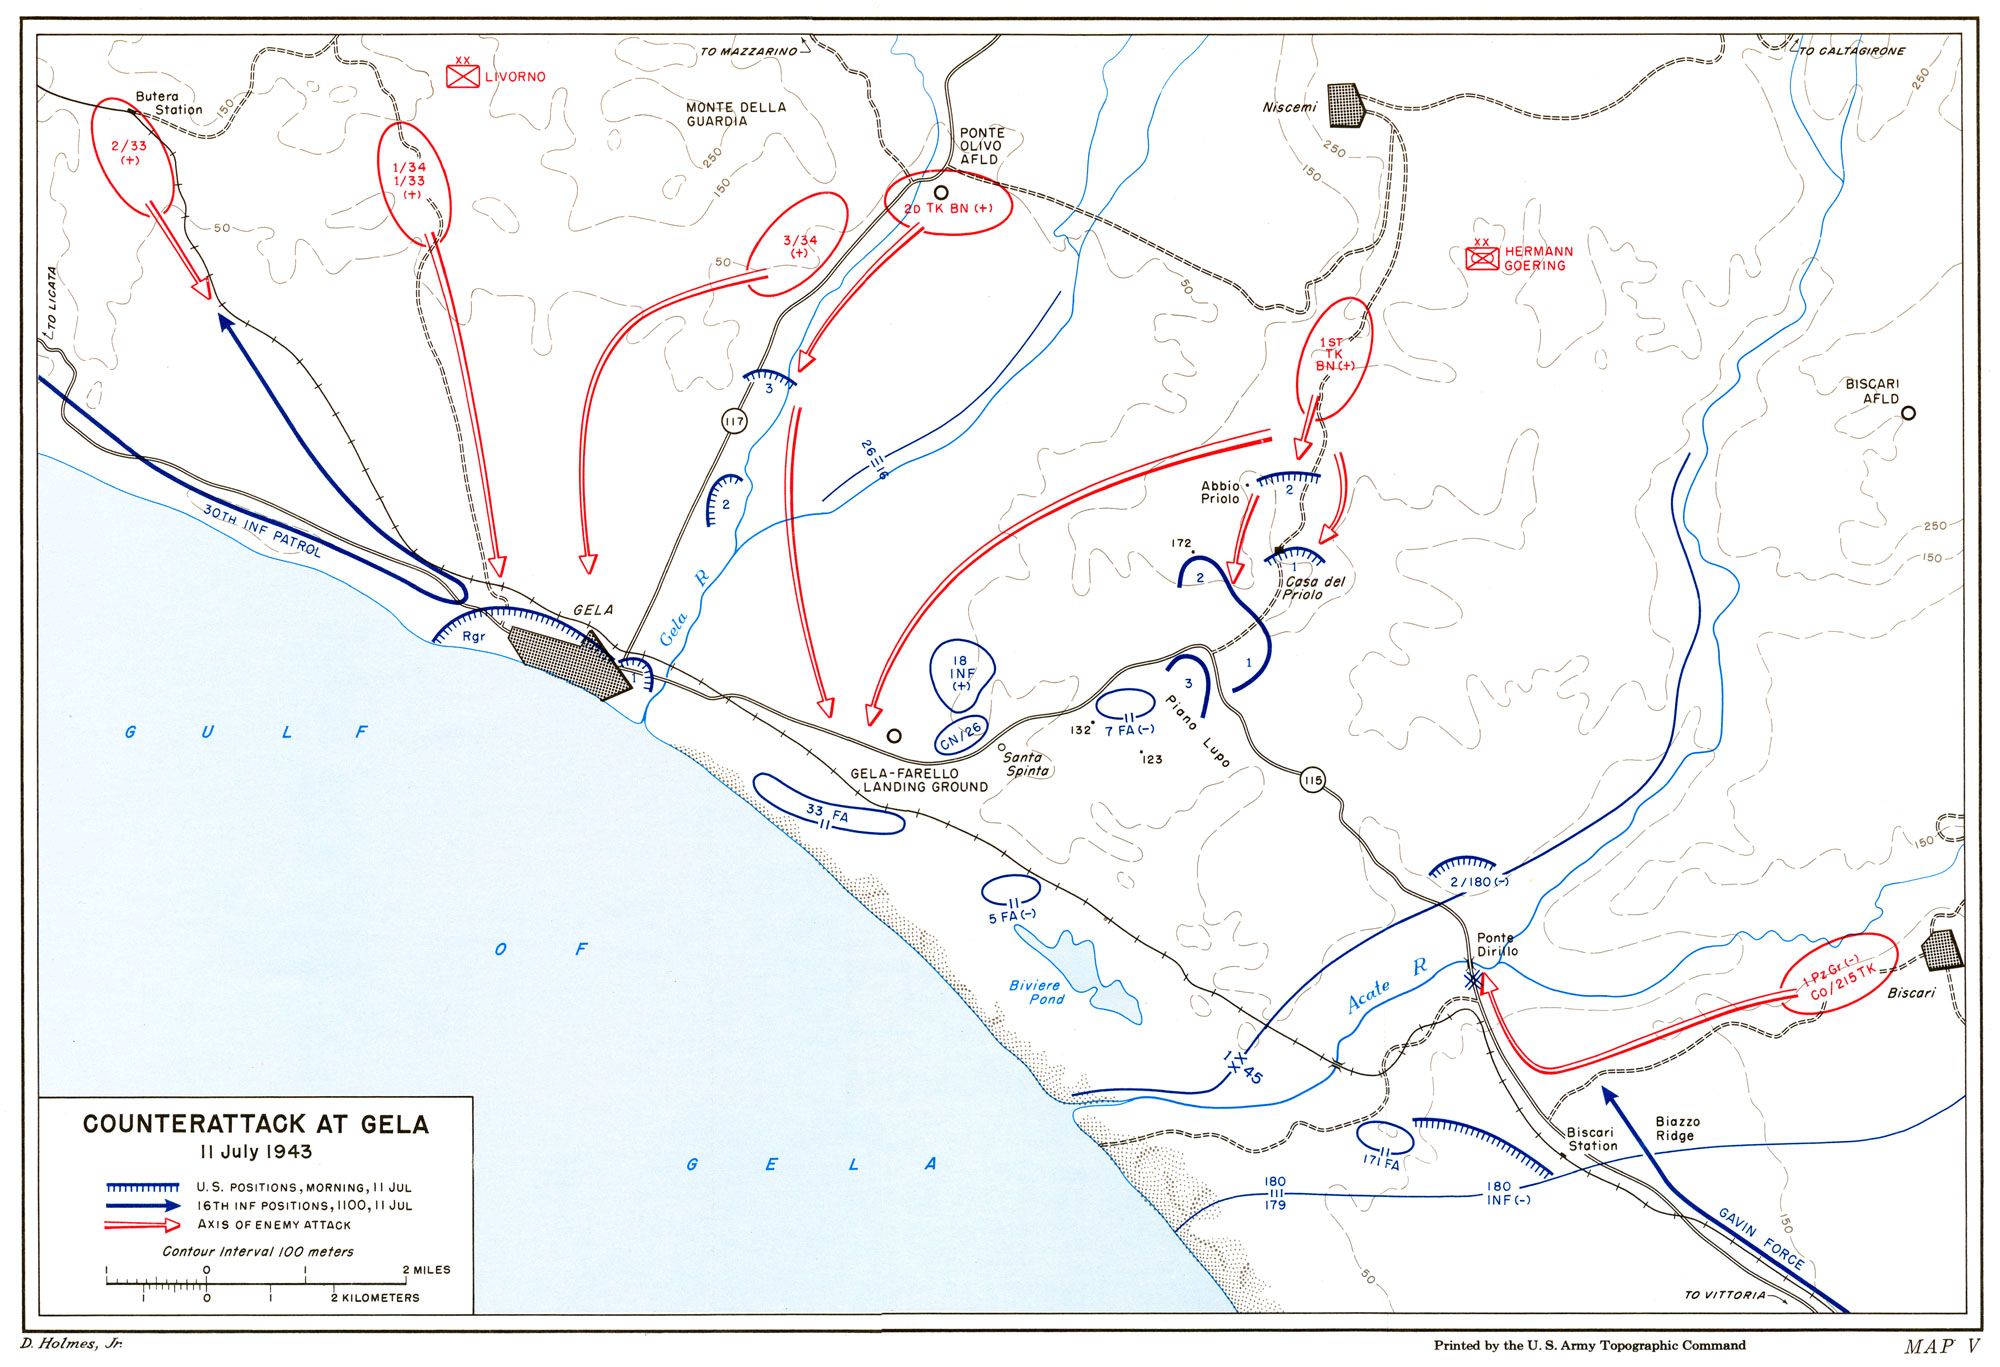 The German counterattack at Gela